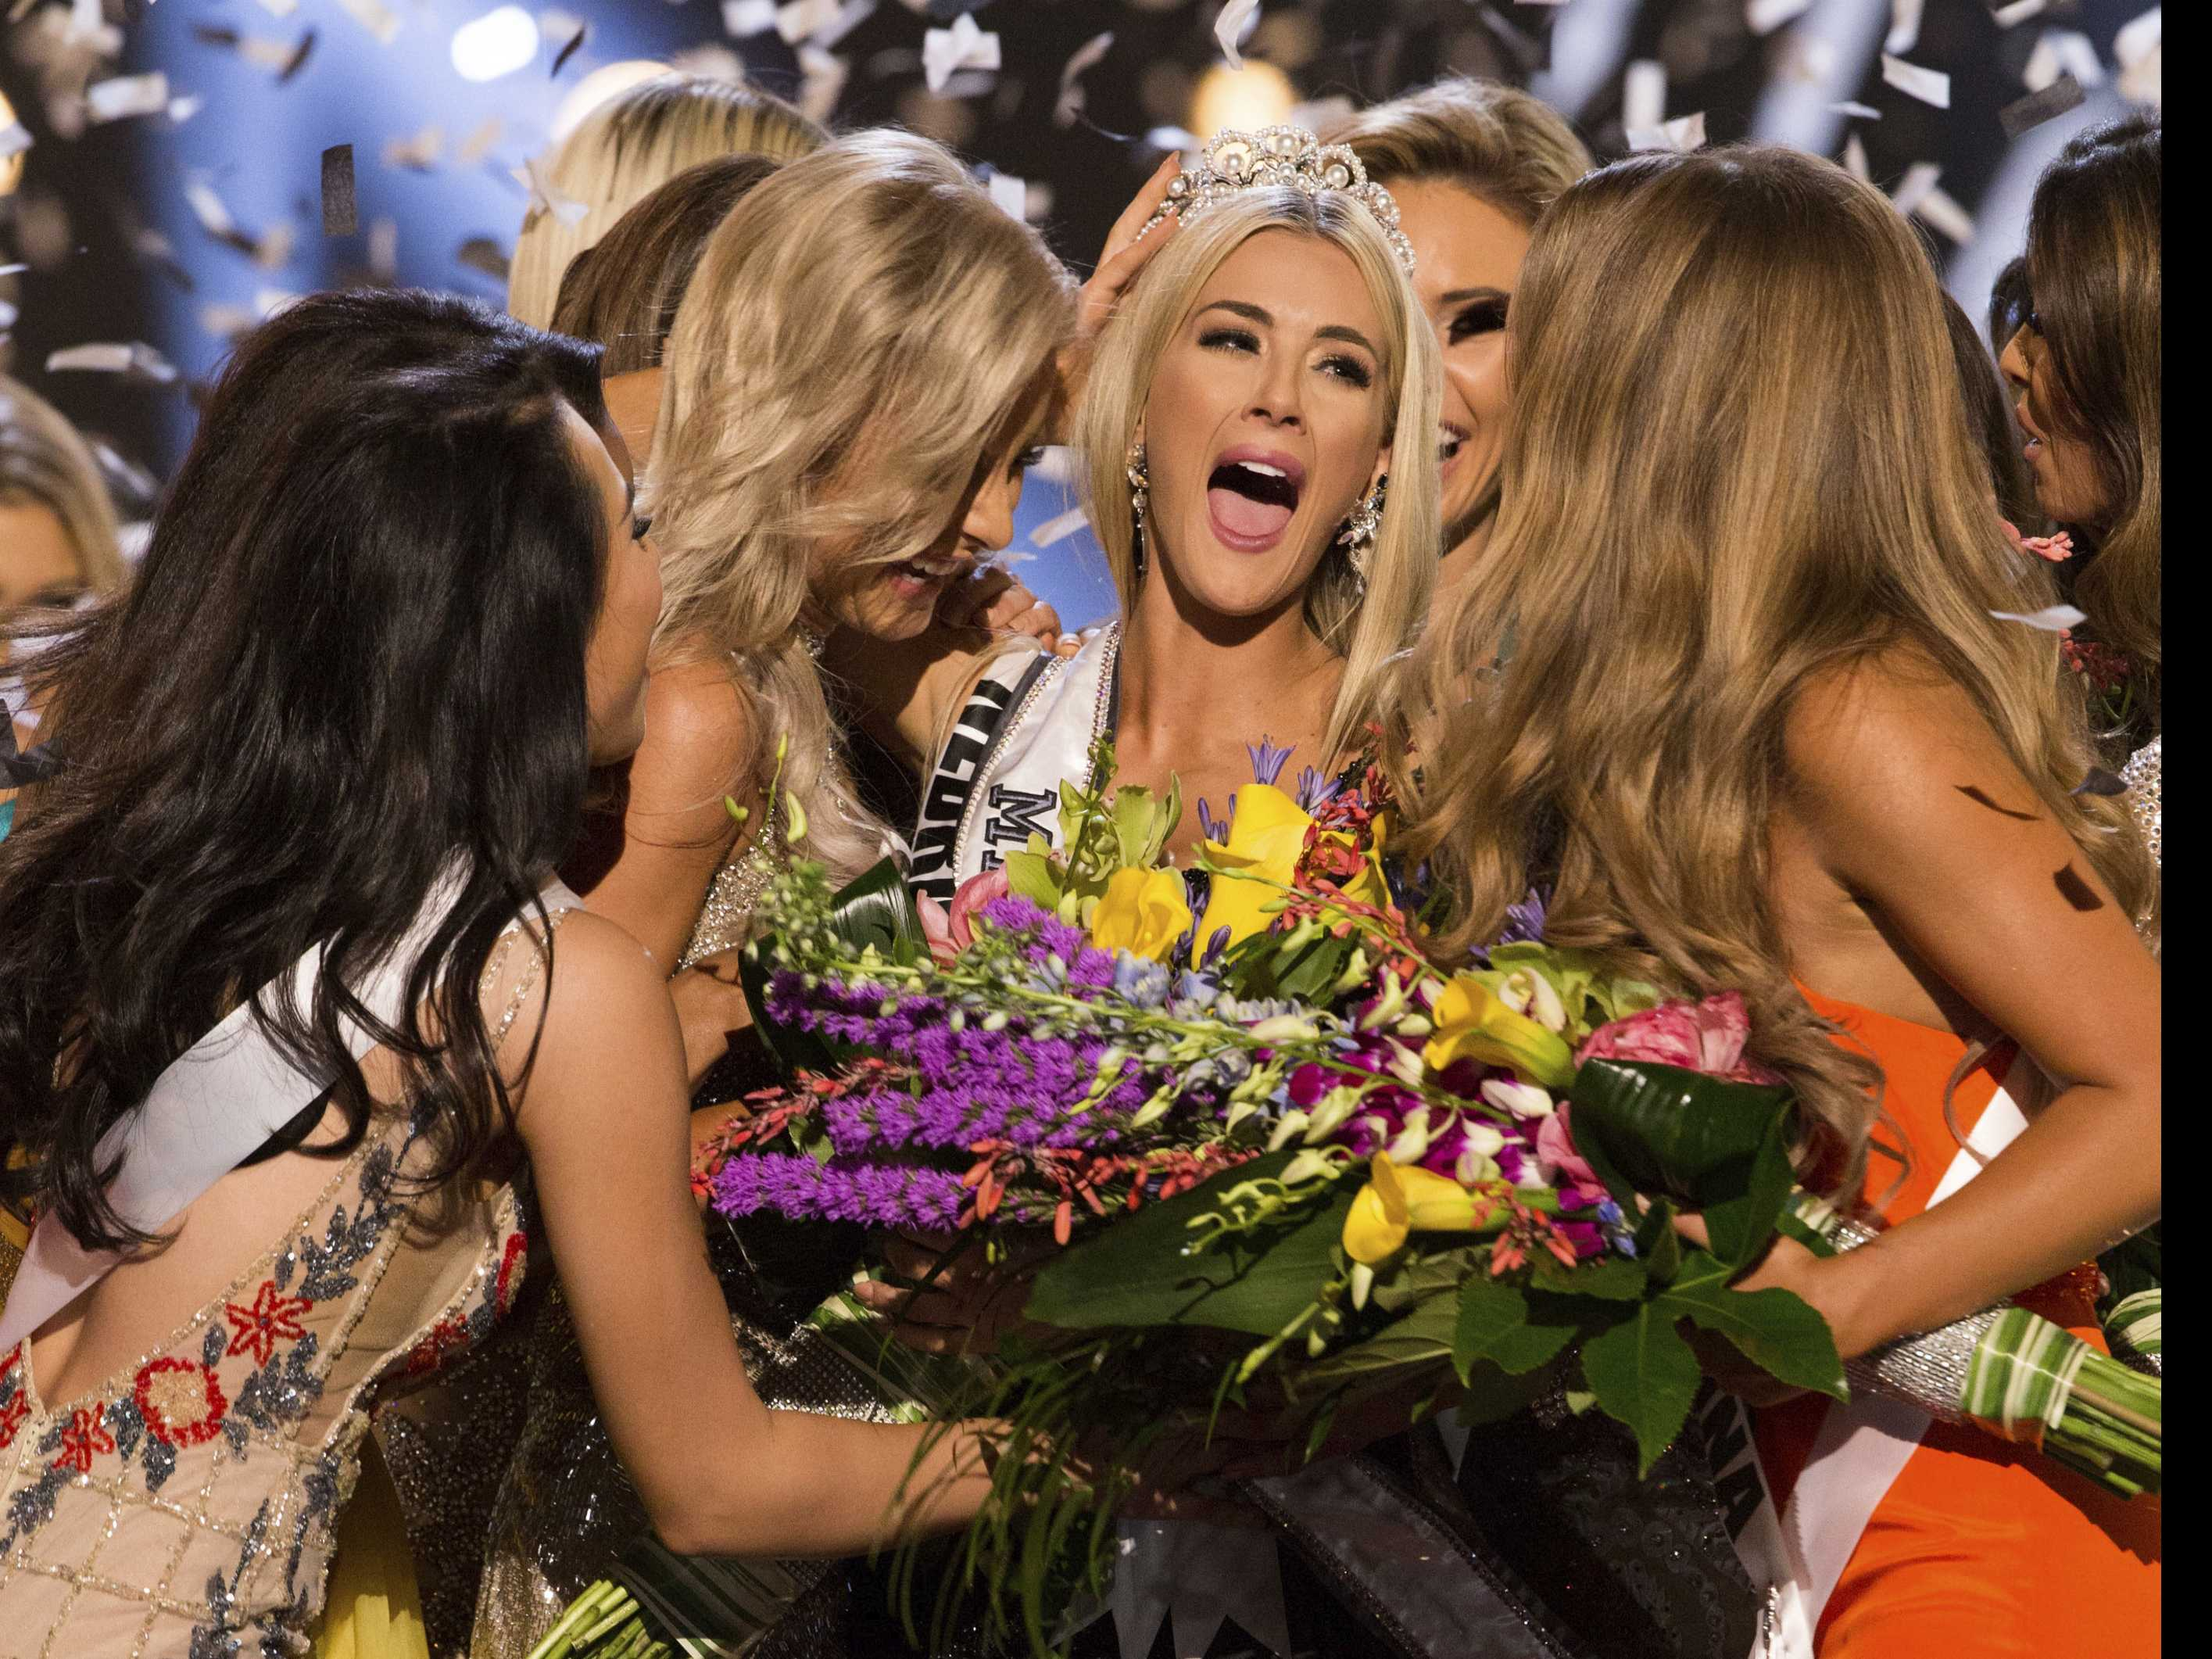 Miss Nebraska Winner of Miss USA Competition